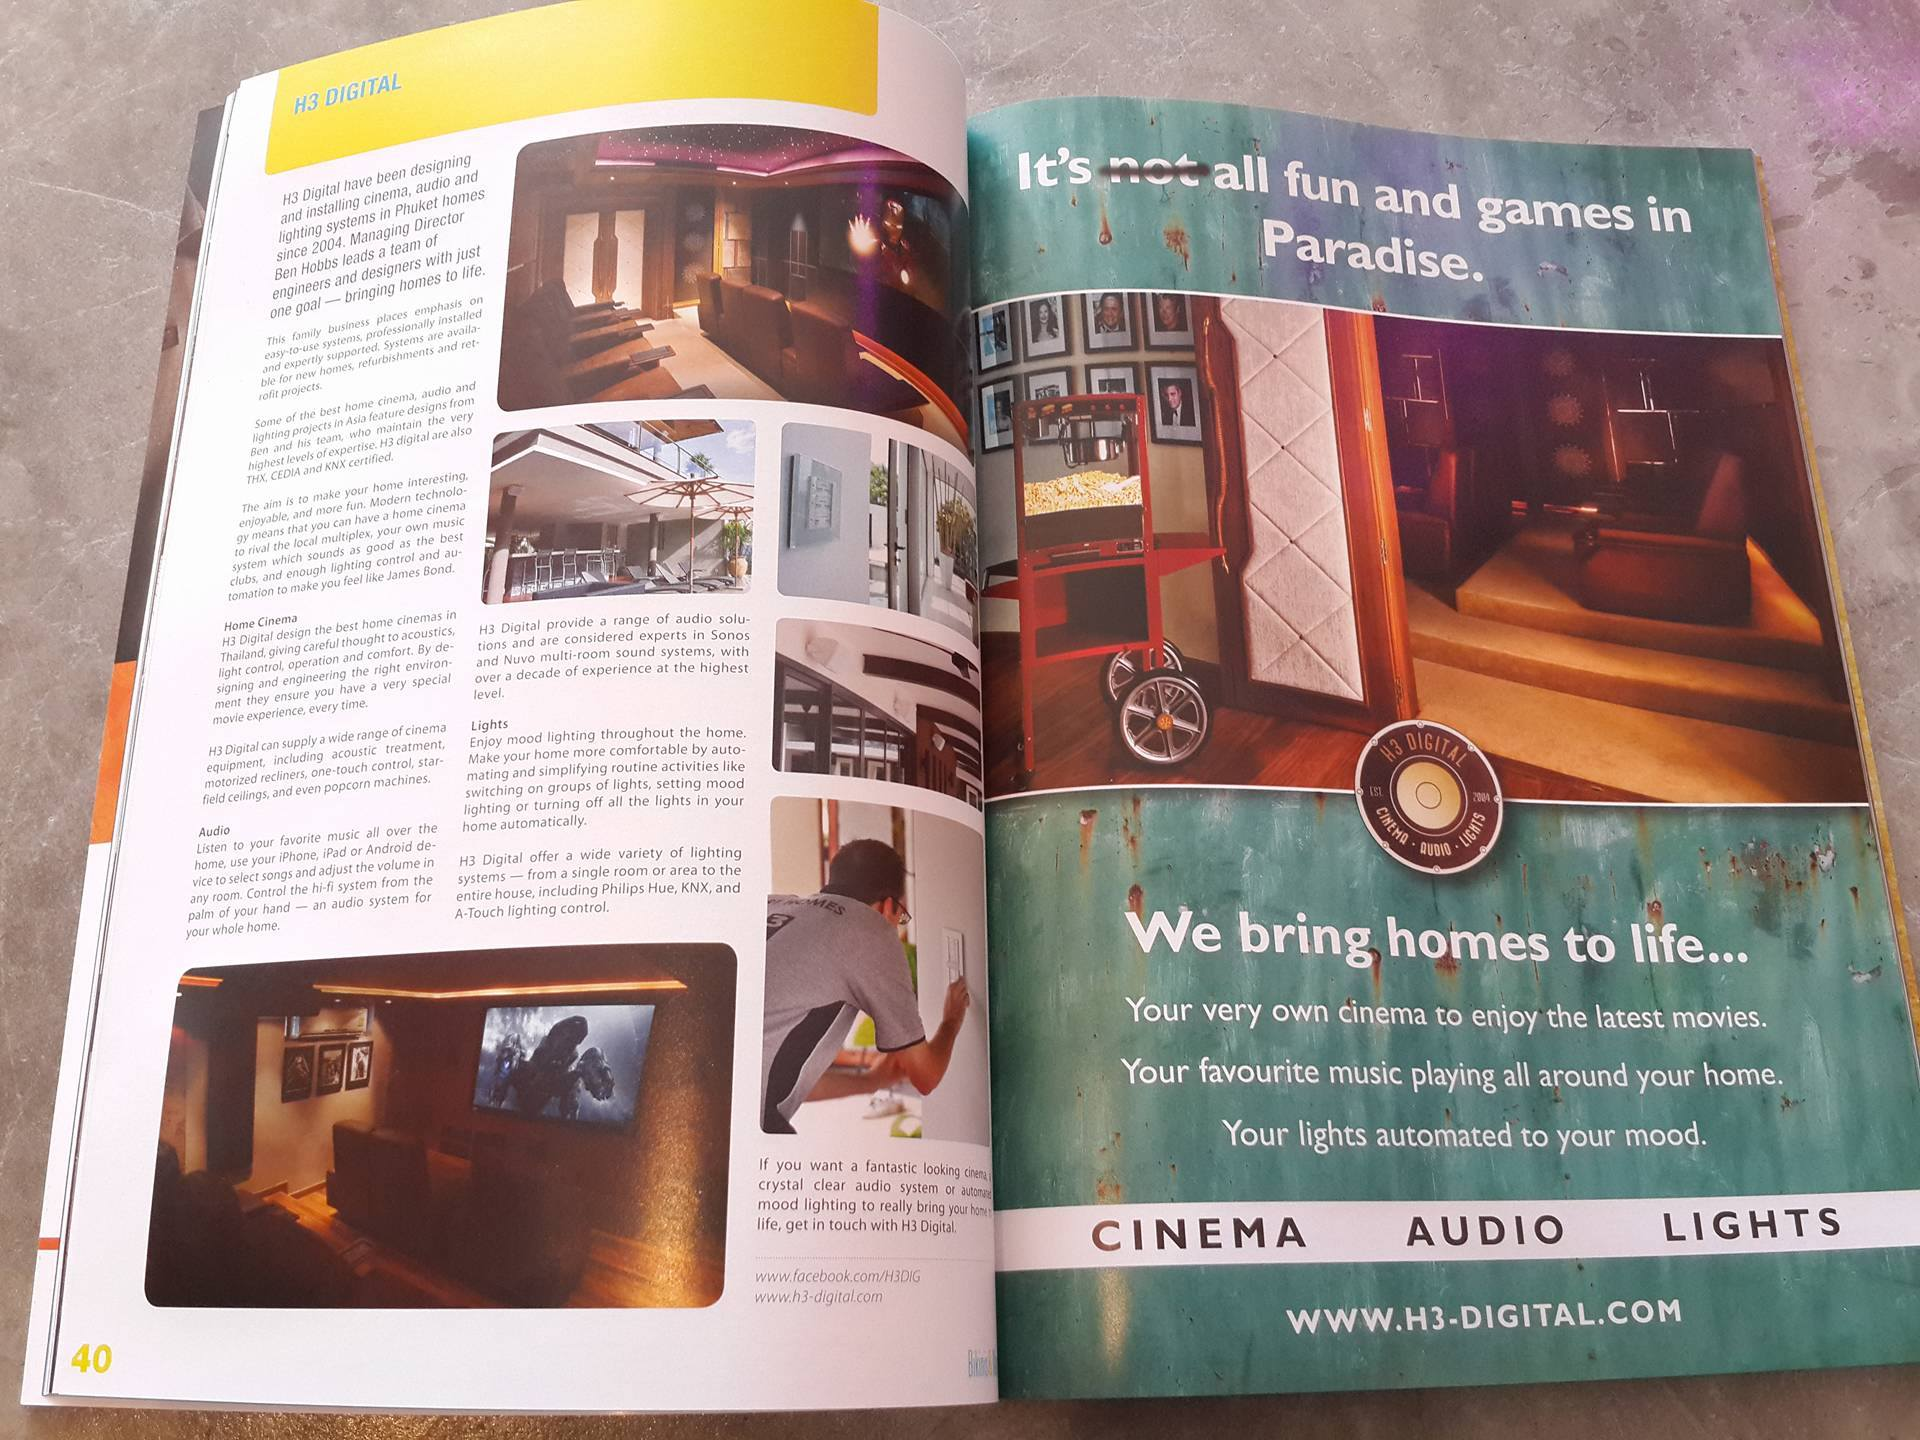 Another magazine feature about Home Cinema in Thailand from H3 Digital.